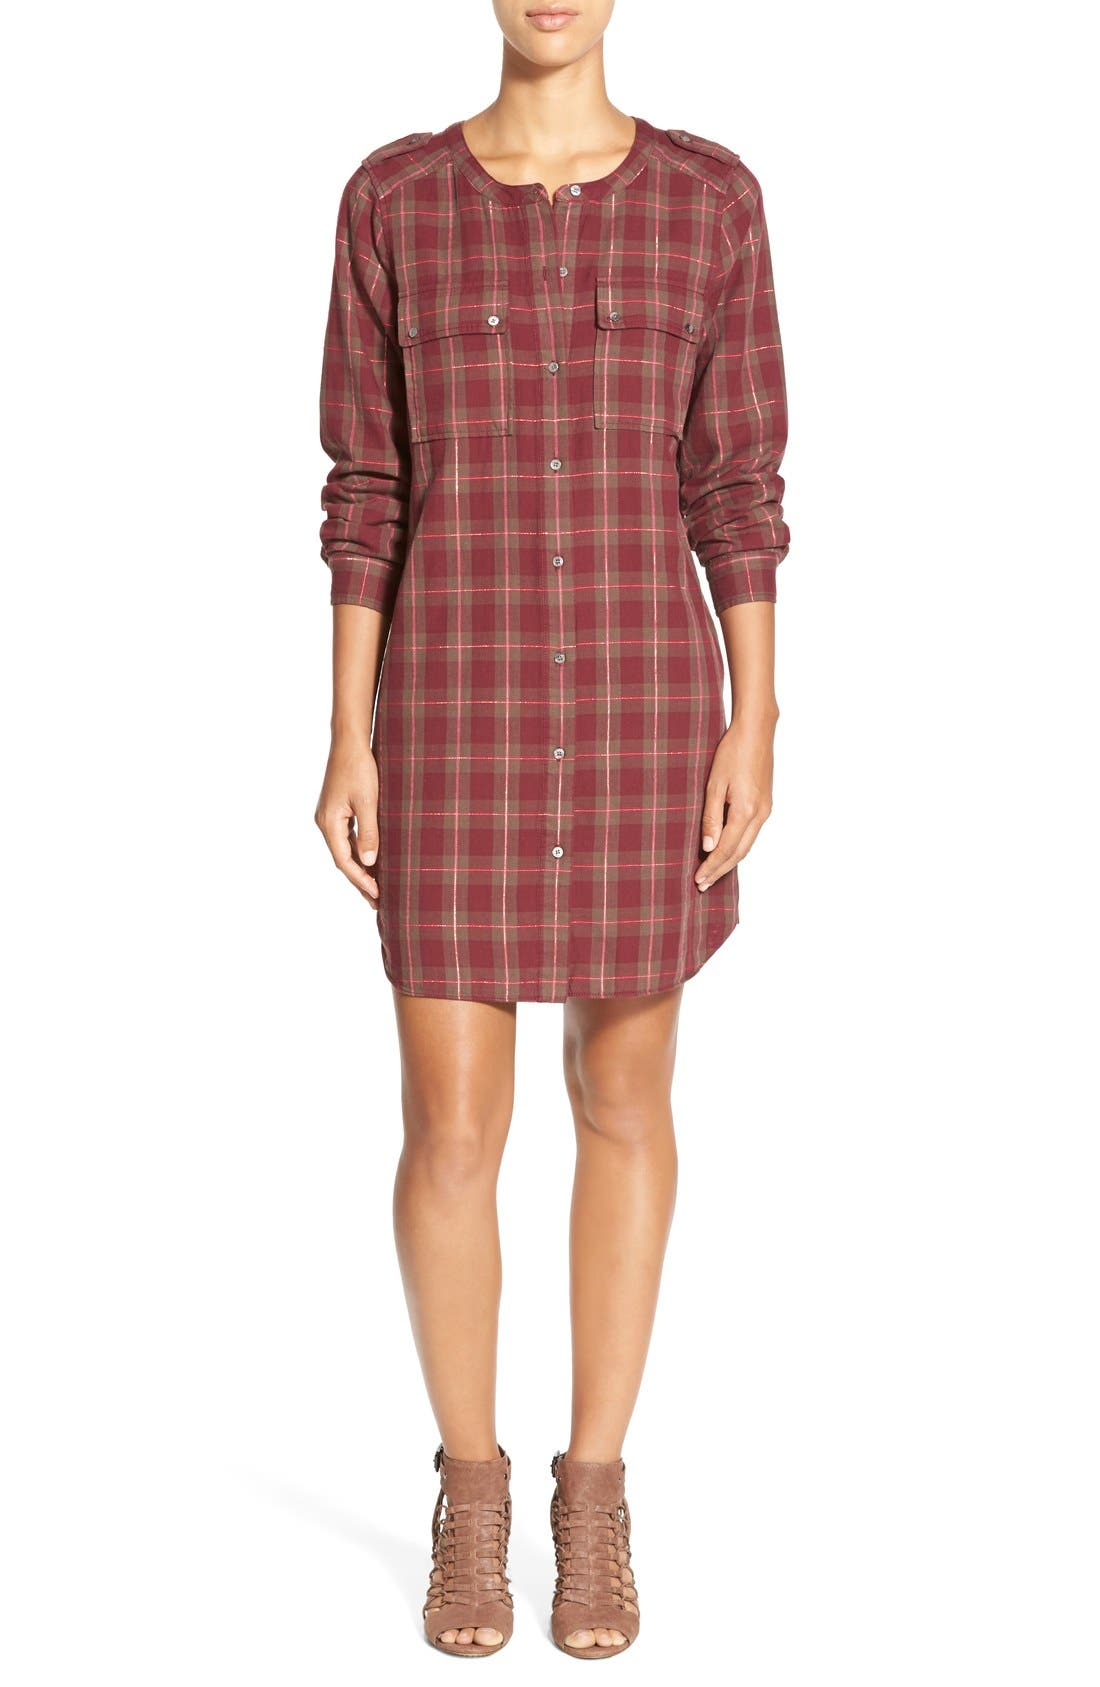 Main Image - Two by Vince Camuto Plaid Collarless Shirtdress